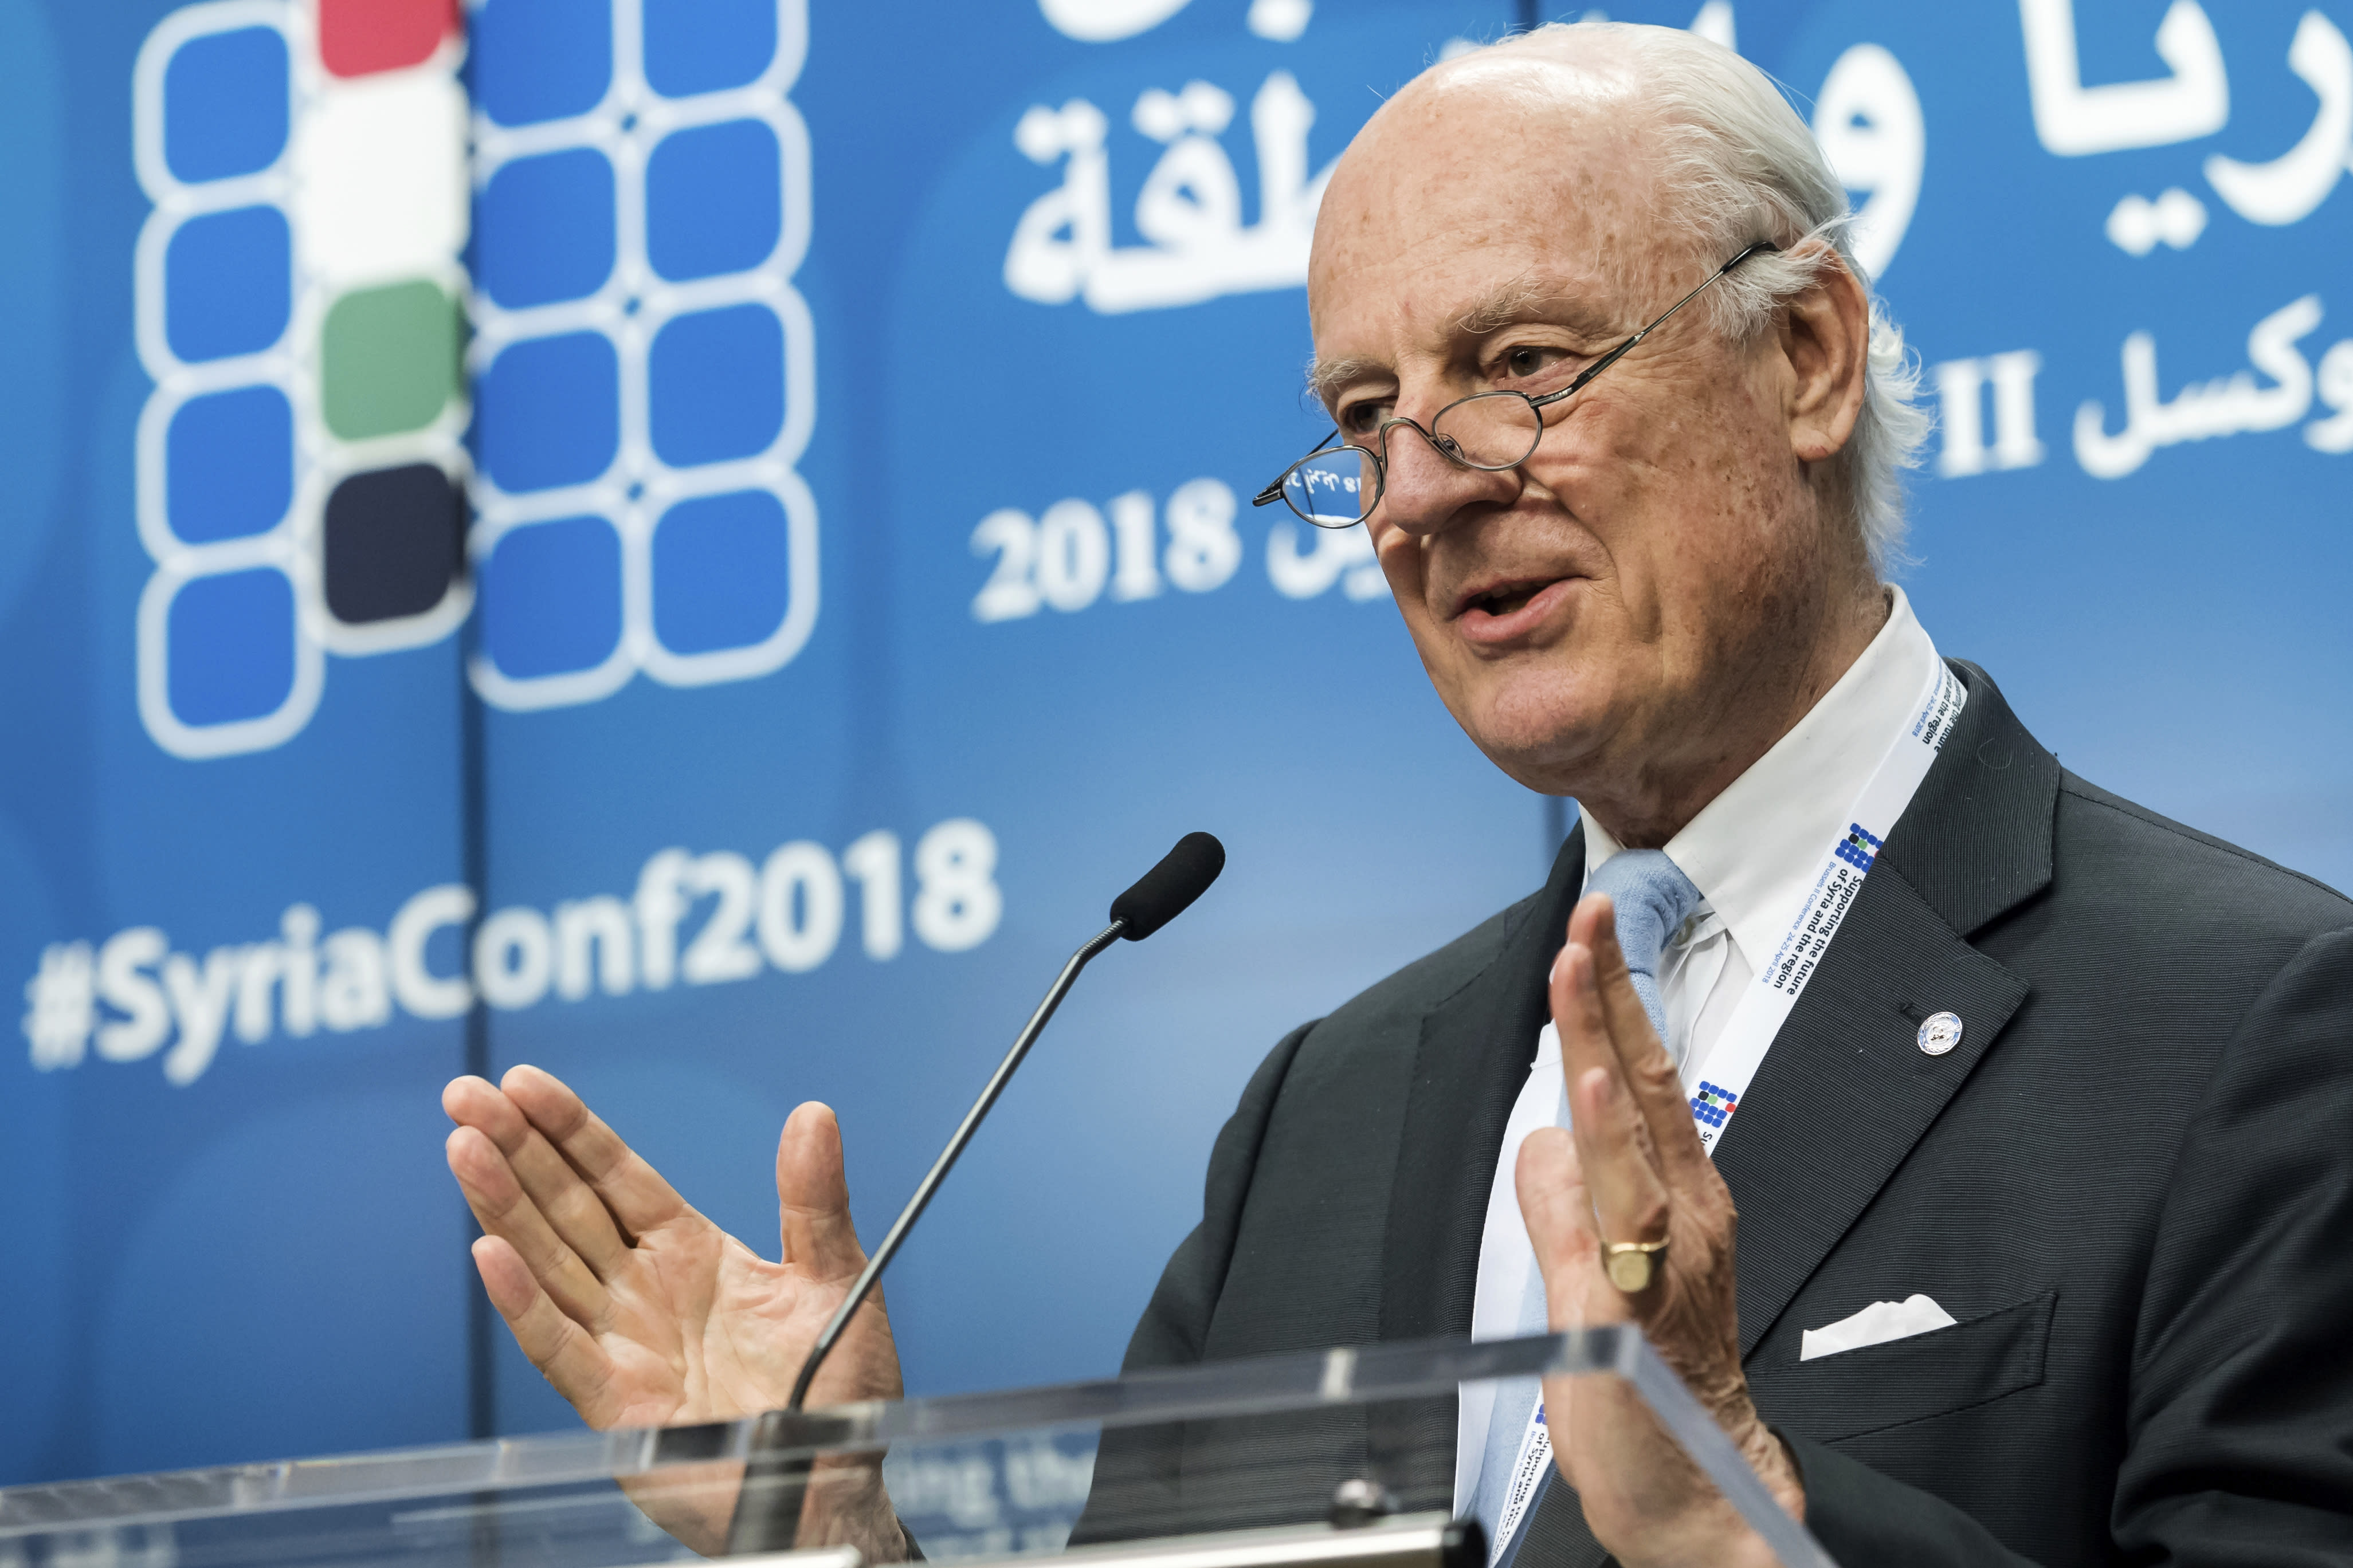 """FILE - In this April 25, 2018, file photo, UN Special Envoy of the Secretary-General on Syria Staffan de Mistura addresses the media during a conference 'Supporting the future of Syria and the region' at the EU Council in Brussels. Fearing a military offensive, the U.N. envoy for Syria proposed Thursday, Aug. 30, that civilians holed up in the rebel-held region of Idlib could evacuate to government-held areas, a move that would in essence send many back into parts of Syria they once fled in its 7-1/2-year-old war. De Mistura expresses fears of a """"perfect storm"""" that could have a devastating impact on nearly 3 million people, nearly half of whom arrived from elsewhere in Syria, in the region largely controlled by al-Qaida-linked fighters. (AP Photo/Geert Vanden Wijngaert, File)"""